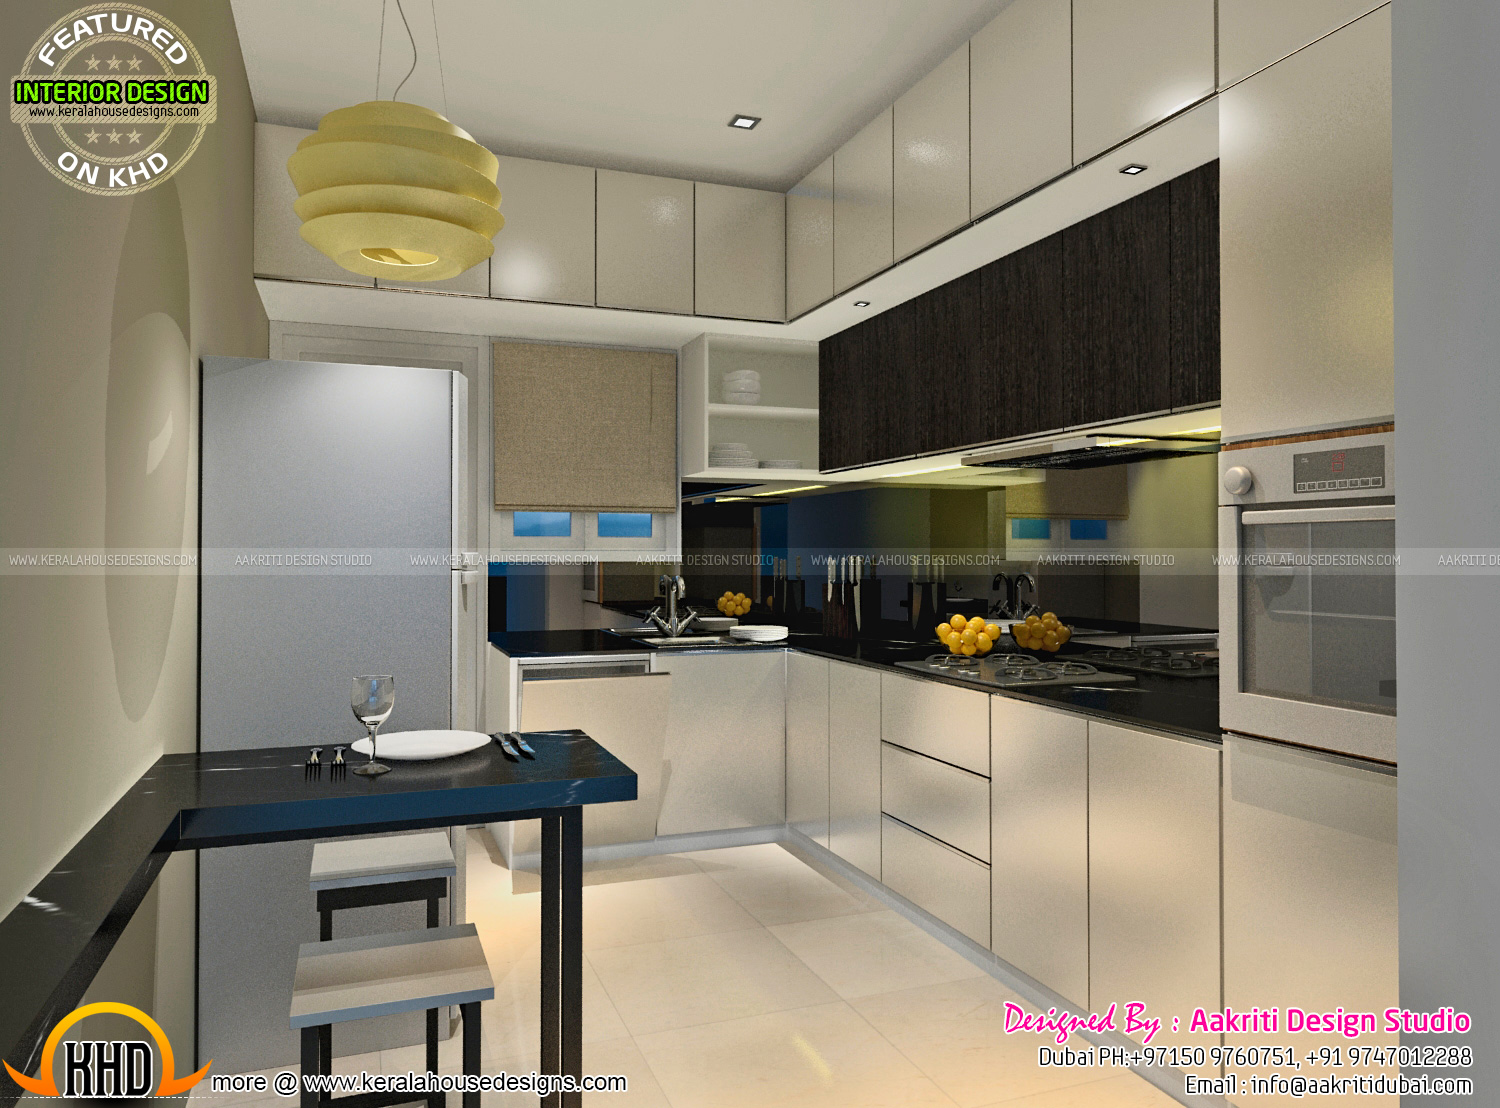 Dining kitchen wash area interior kerala home design for Kitchen interior design styles